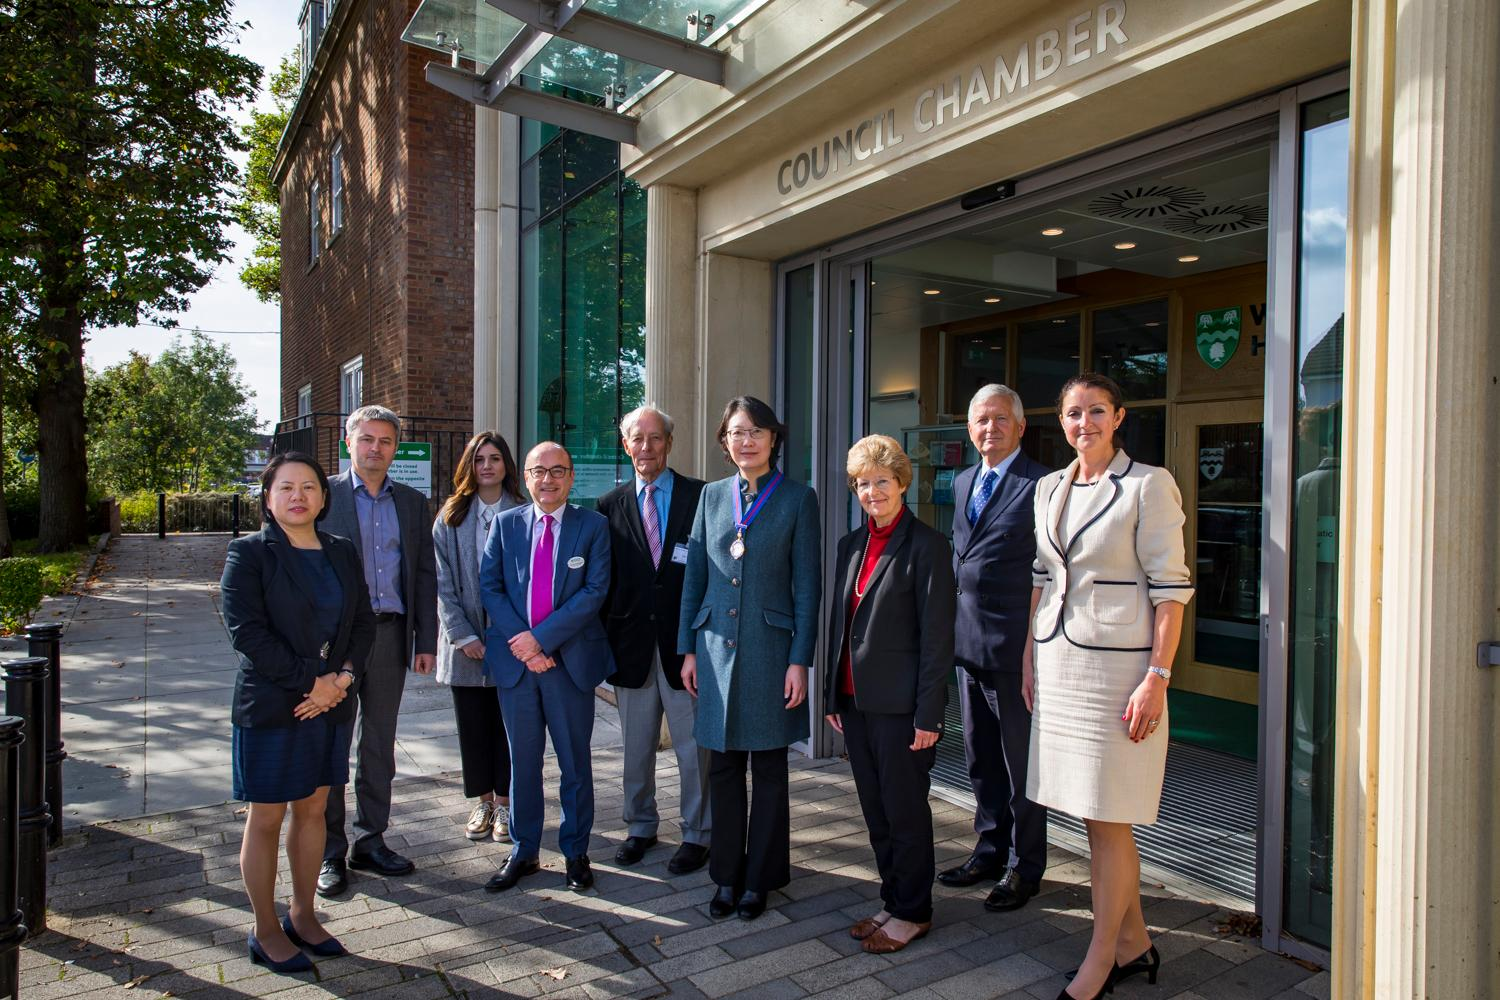 RTPI celebrates 'foundation of town planning' with centenary trip to Welwyn Garden City